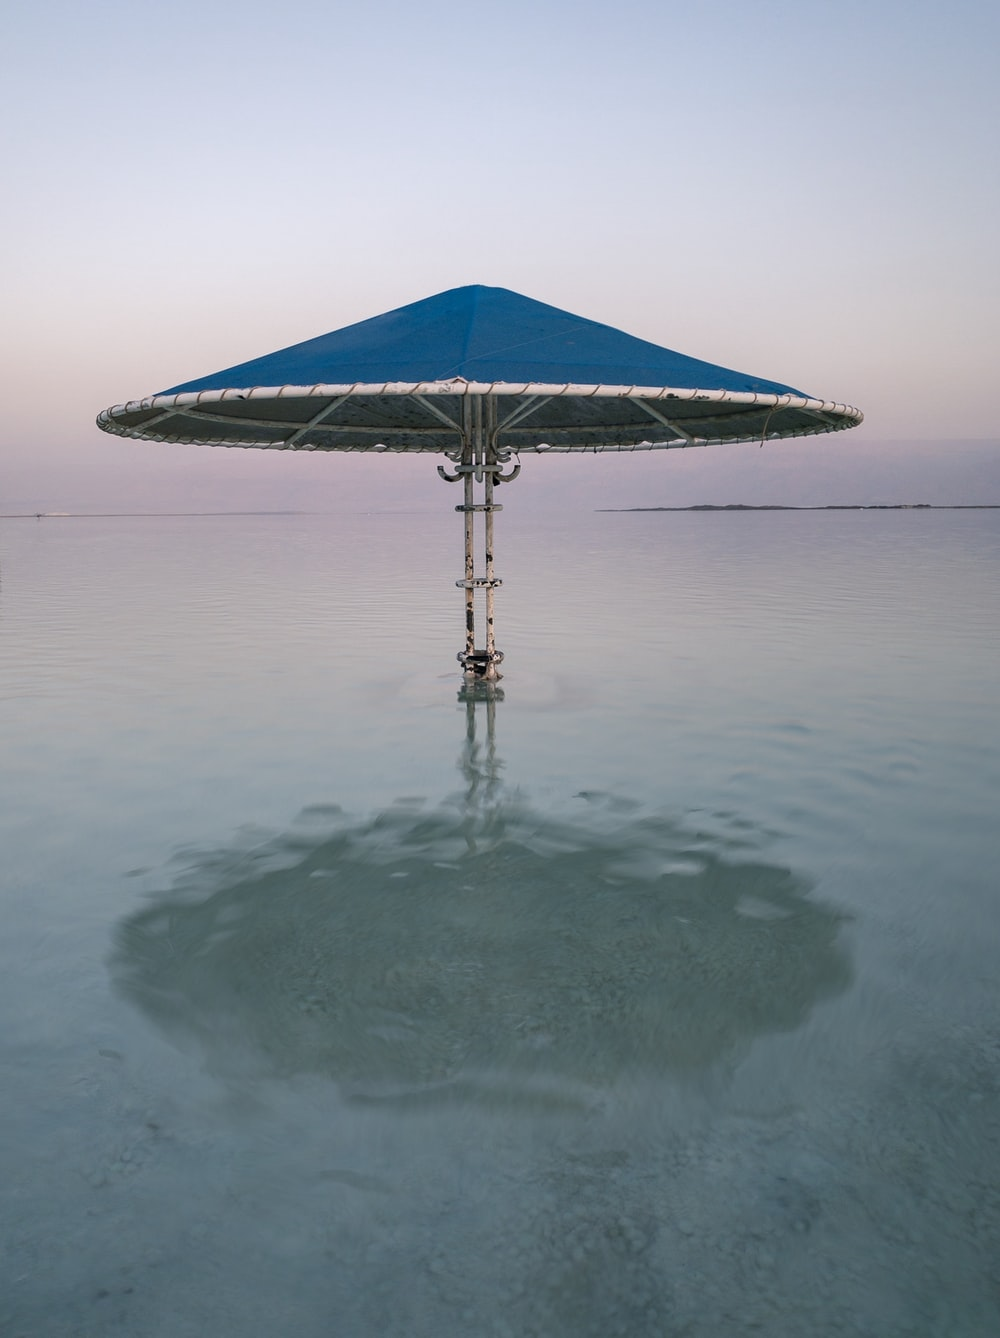 blue and gray patio umbrella in water